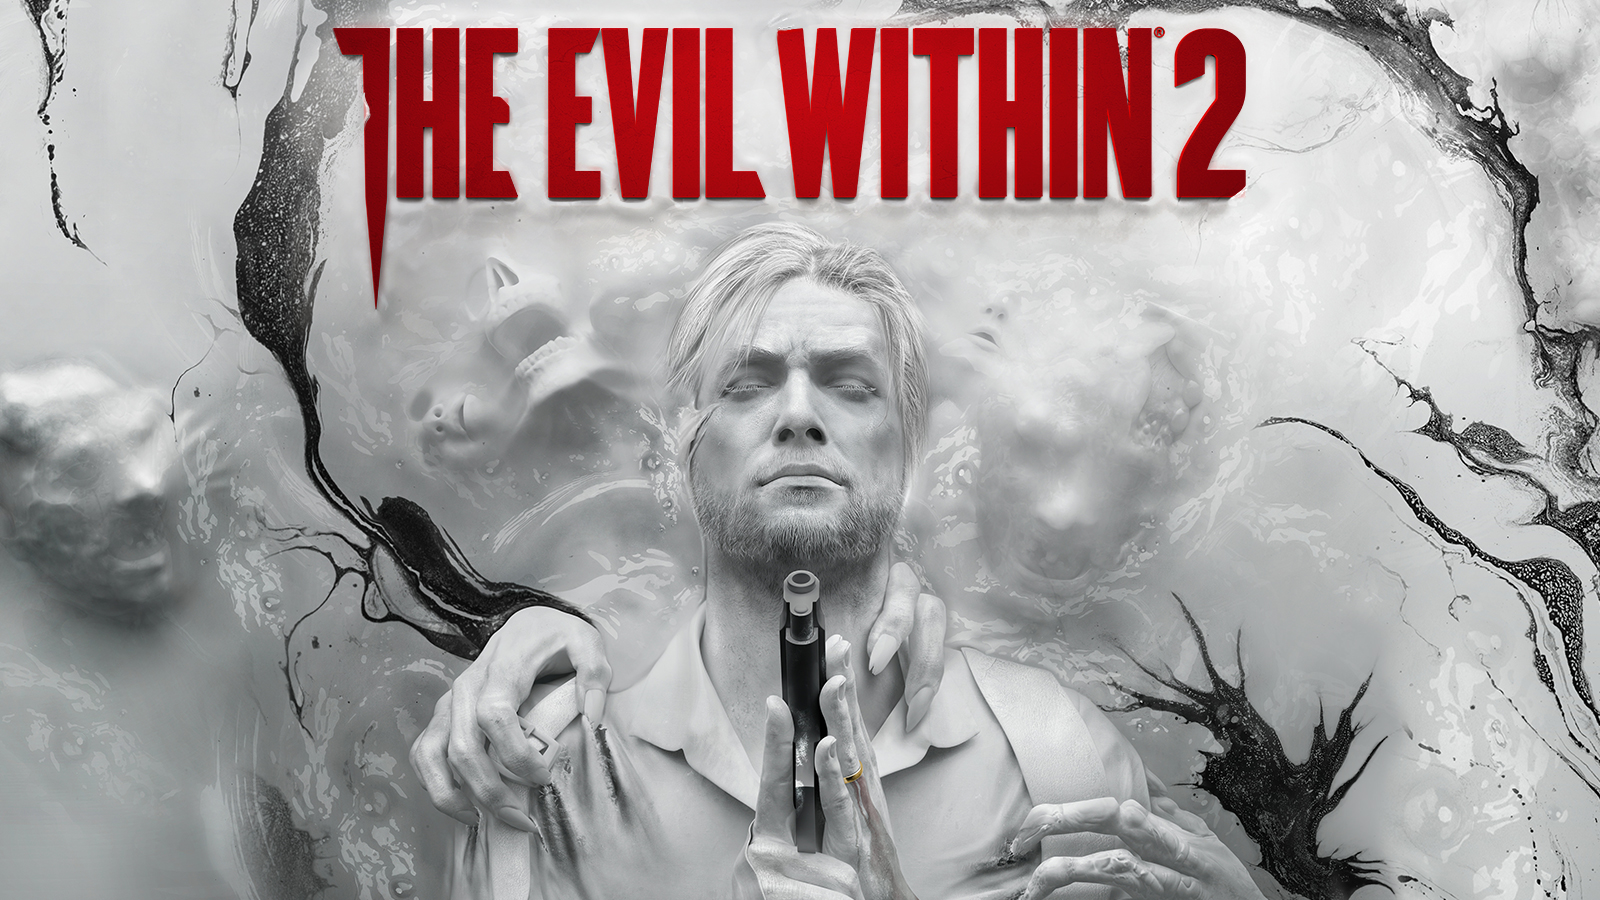 Raj plays The Evil Within 2